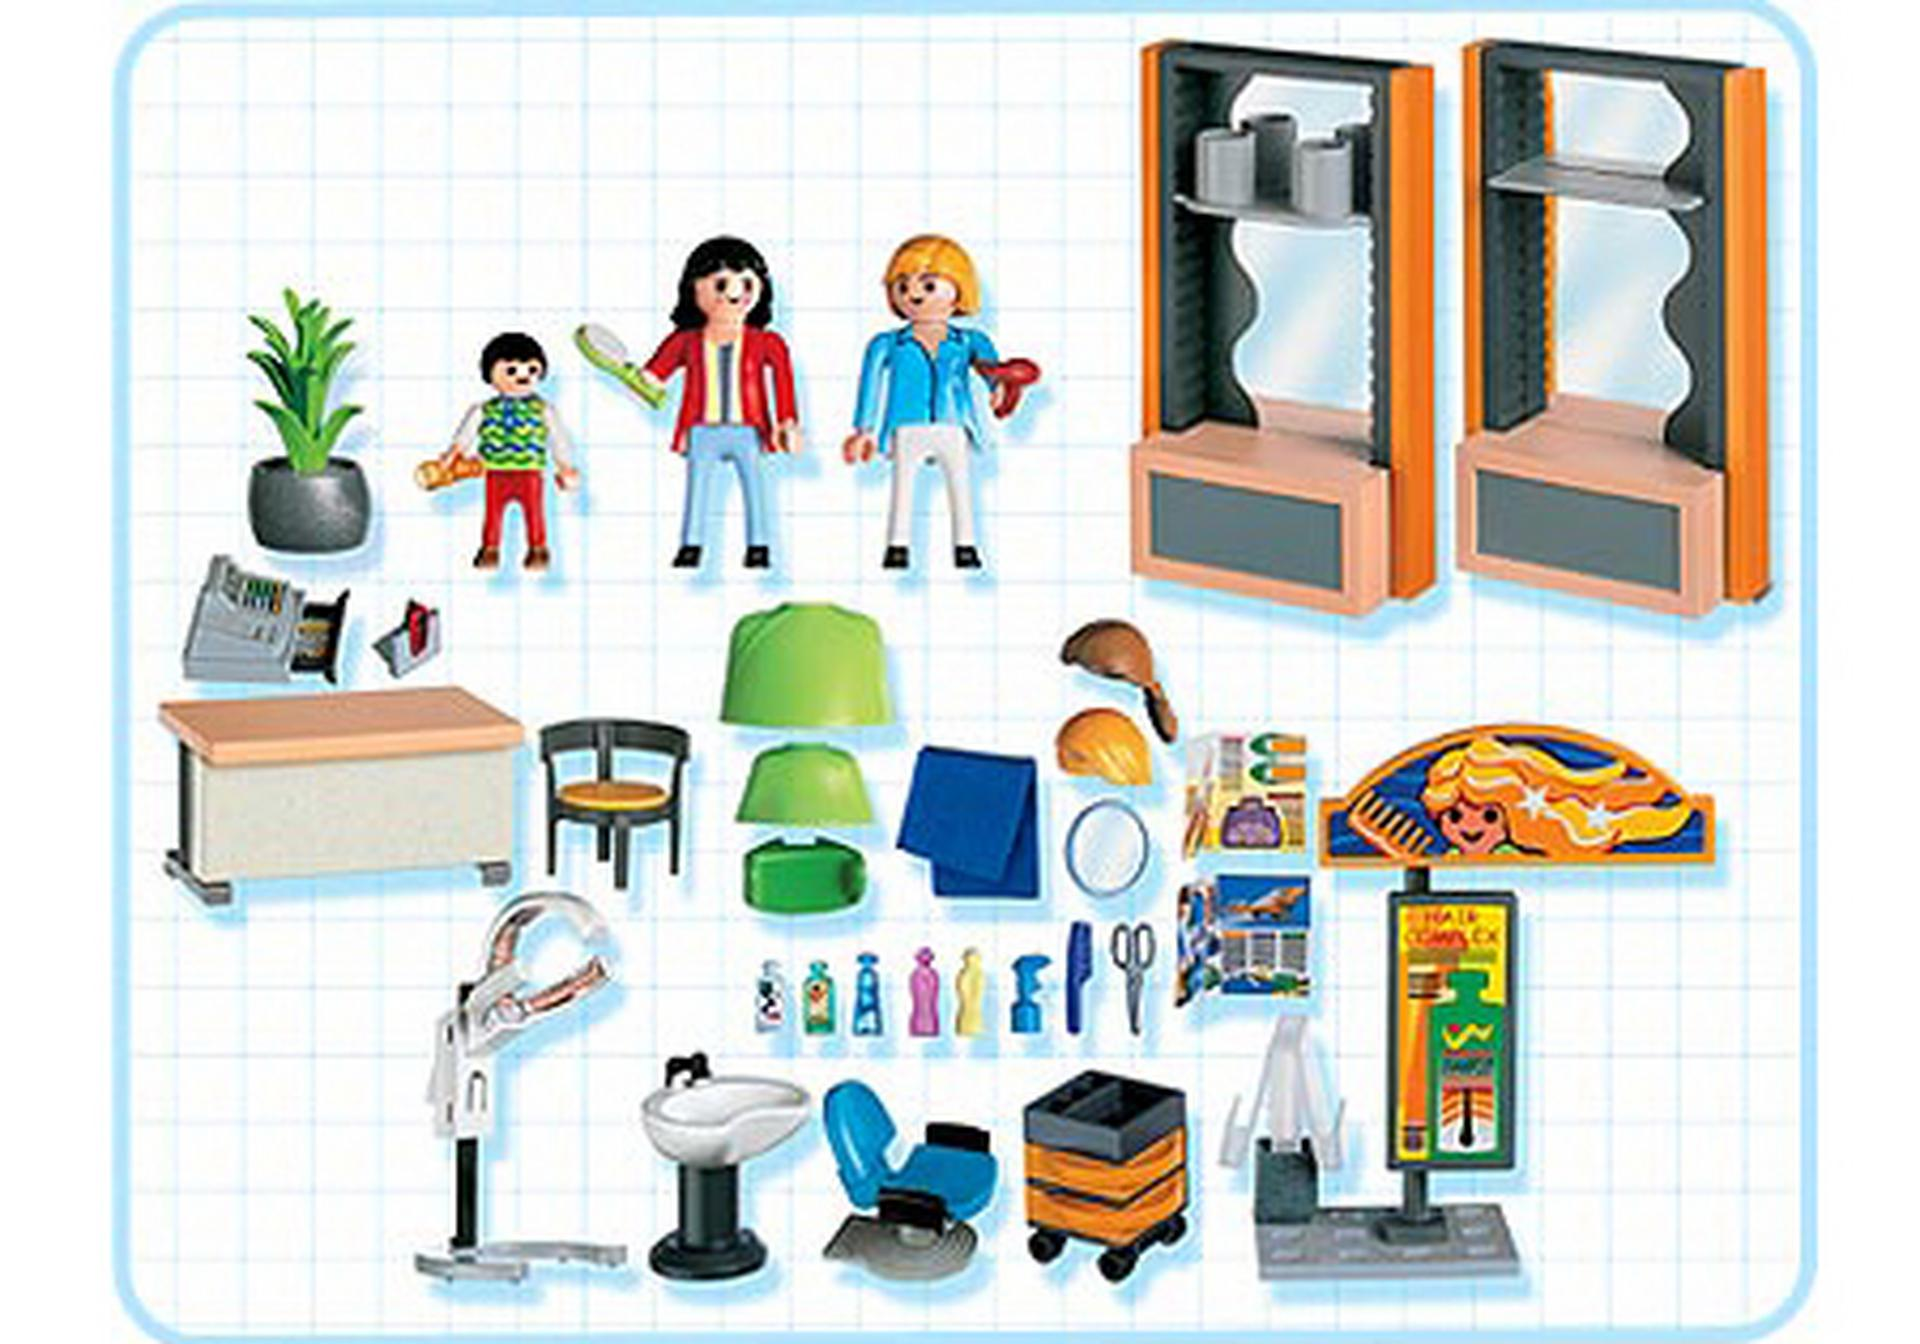 coiffeuse salon de coiffure 4413 a playmobil france